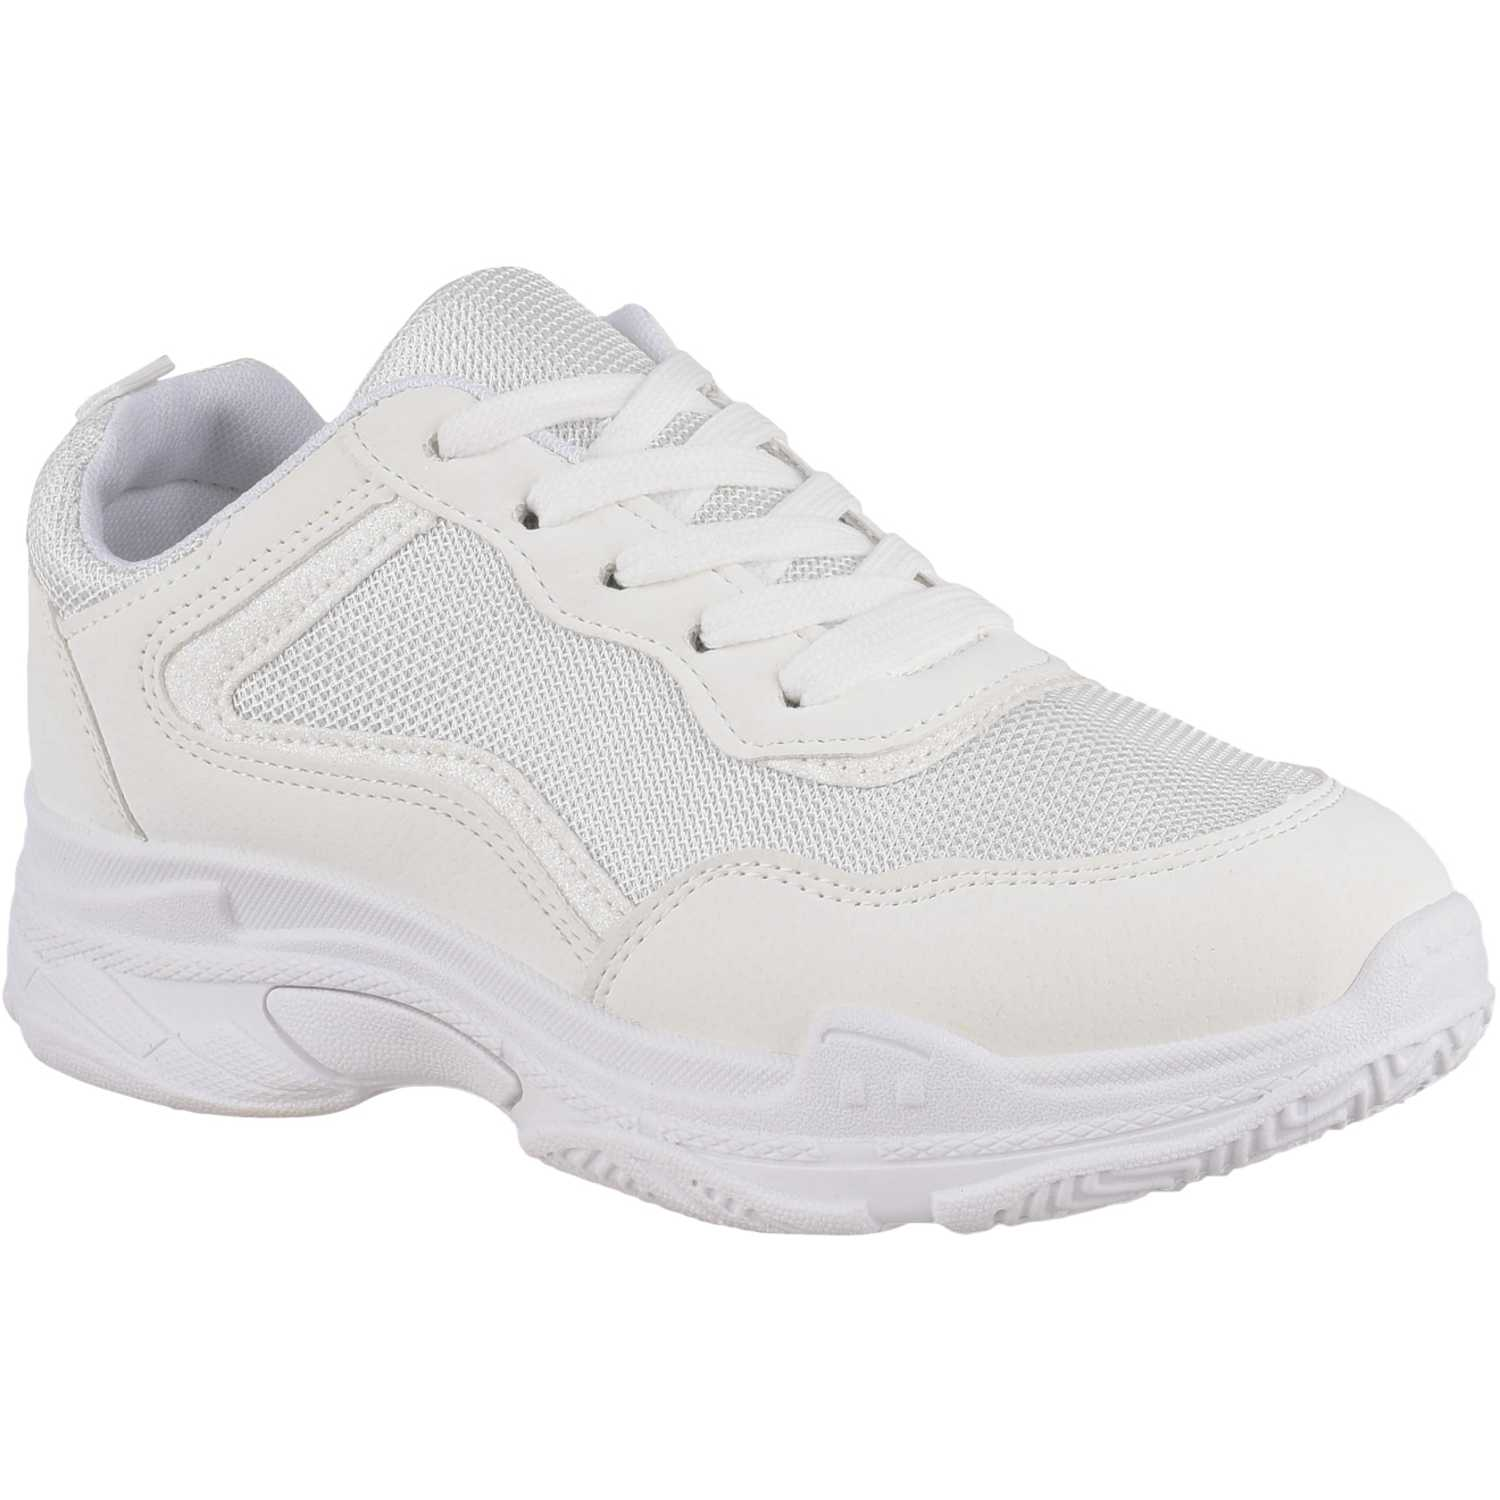 Platanitos z 02 Blanco Zapatillas Fashion